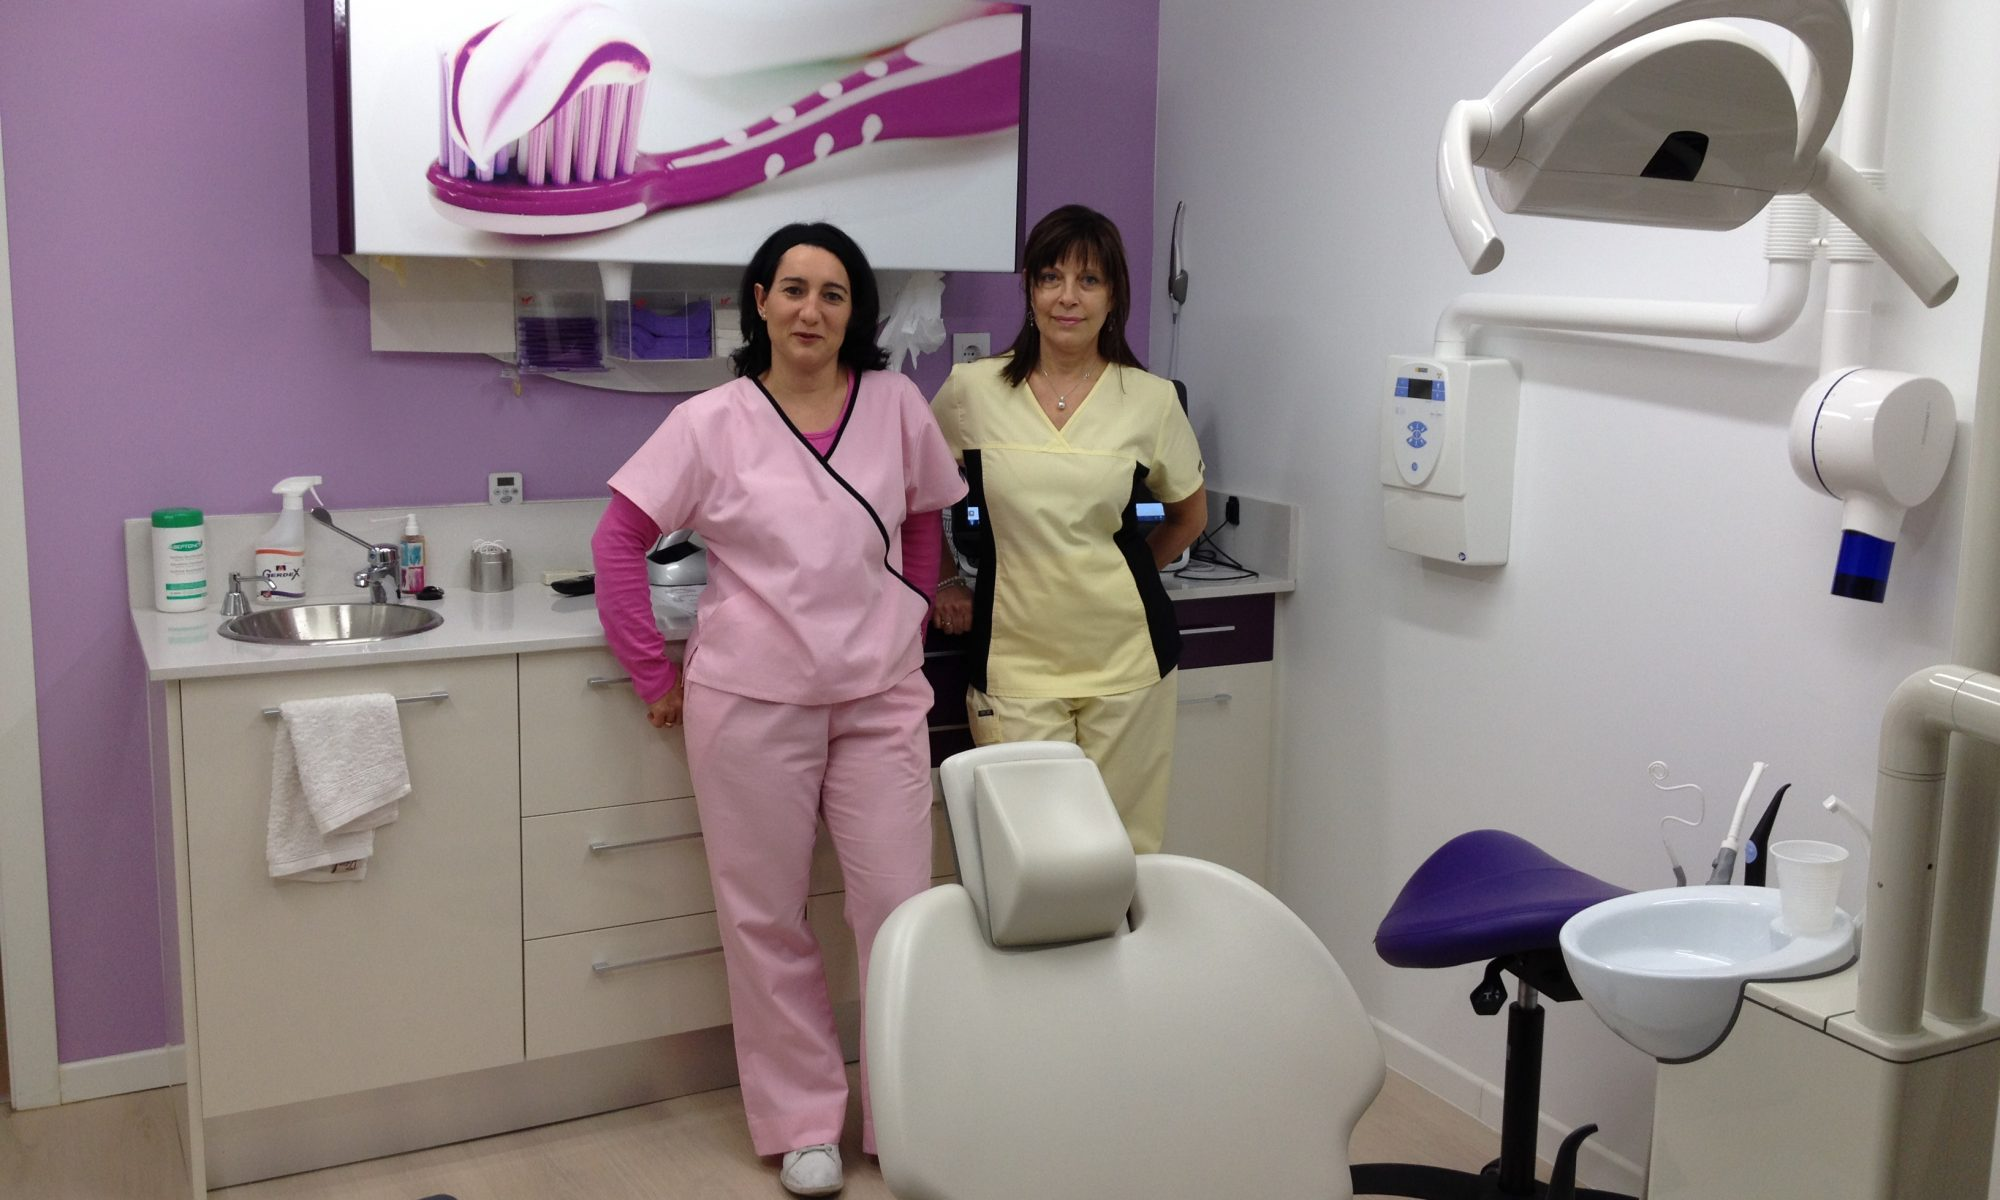 CLINICA DENTAL CLAUDIA